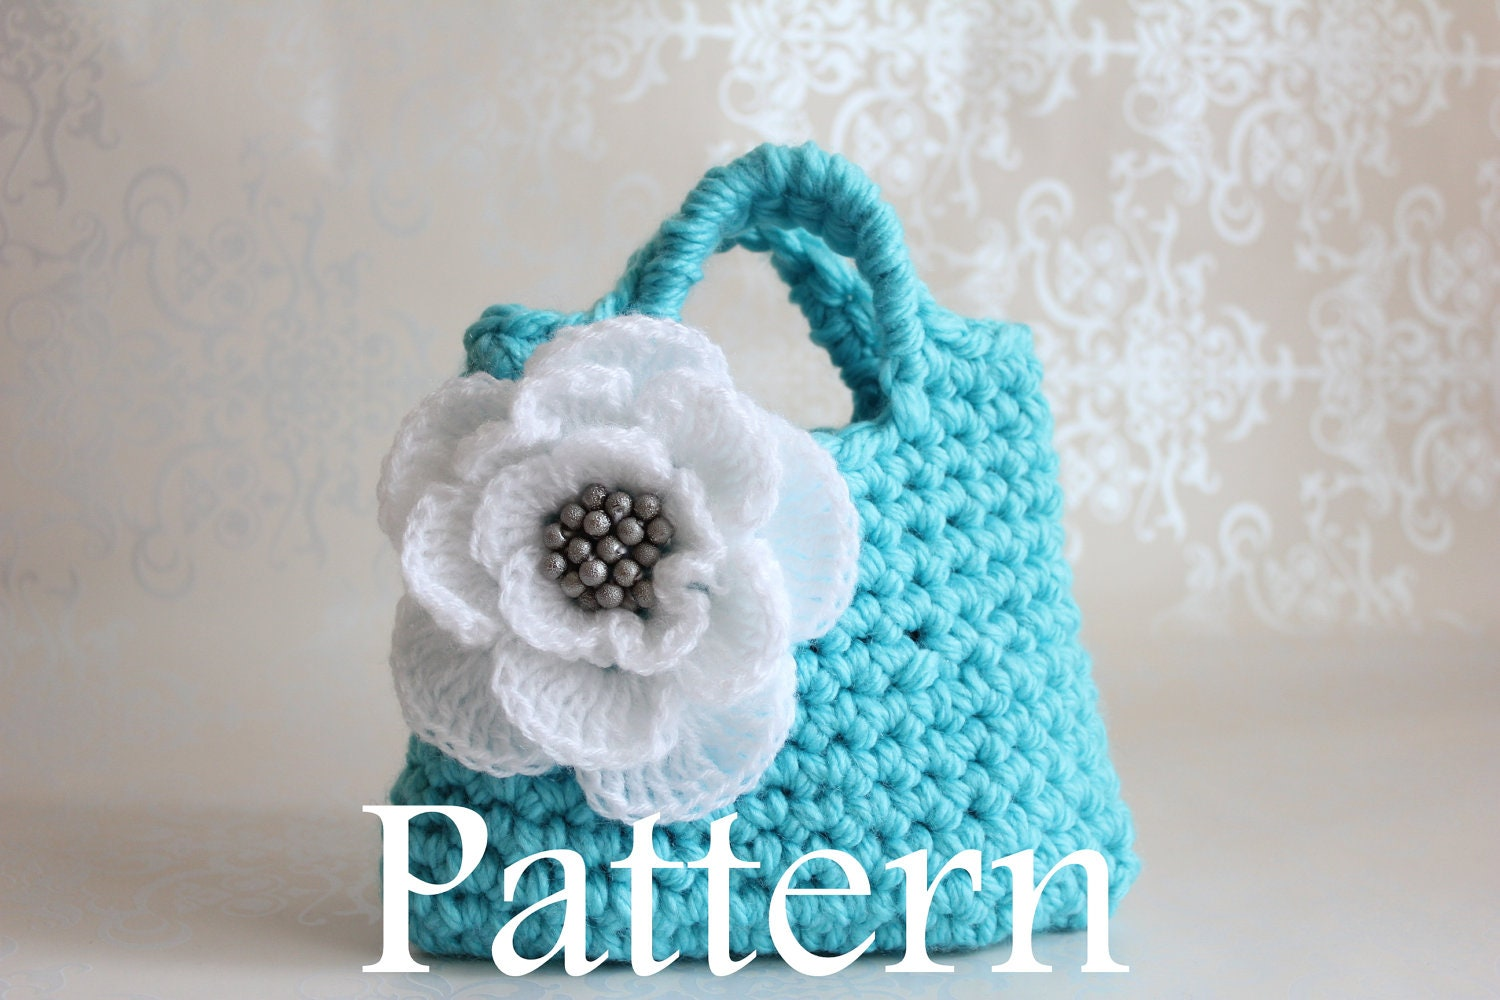 Little Girls Purse PDF crochet pattern by littlegirlsboutique